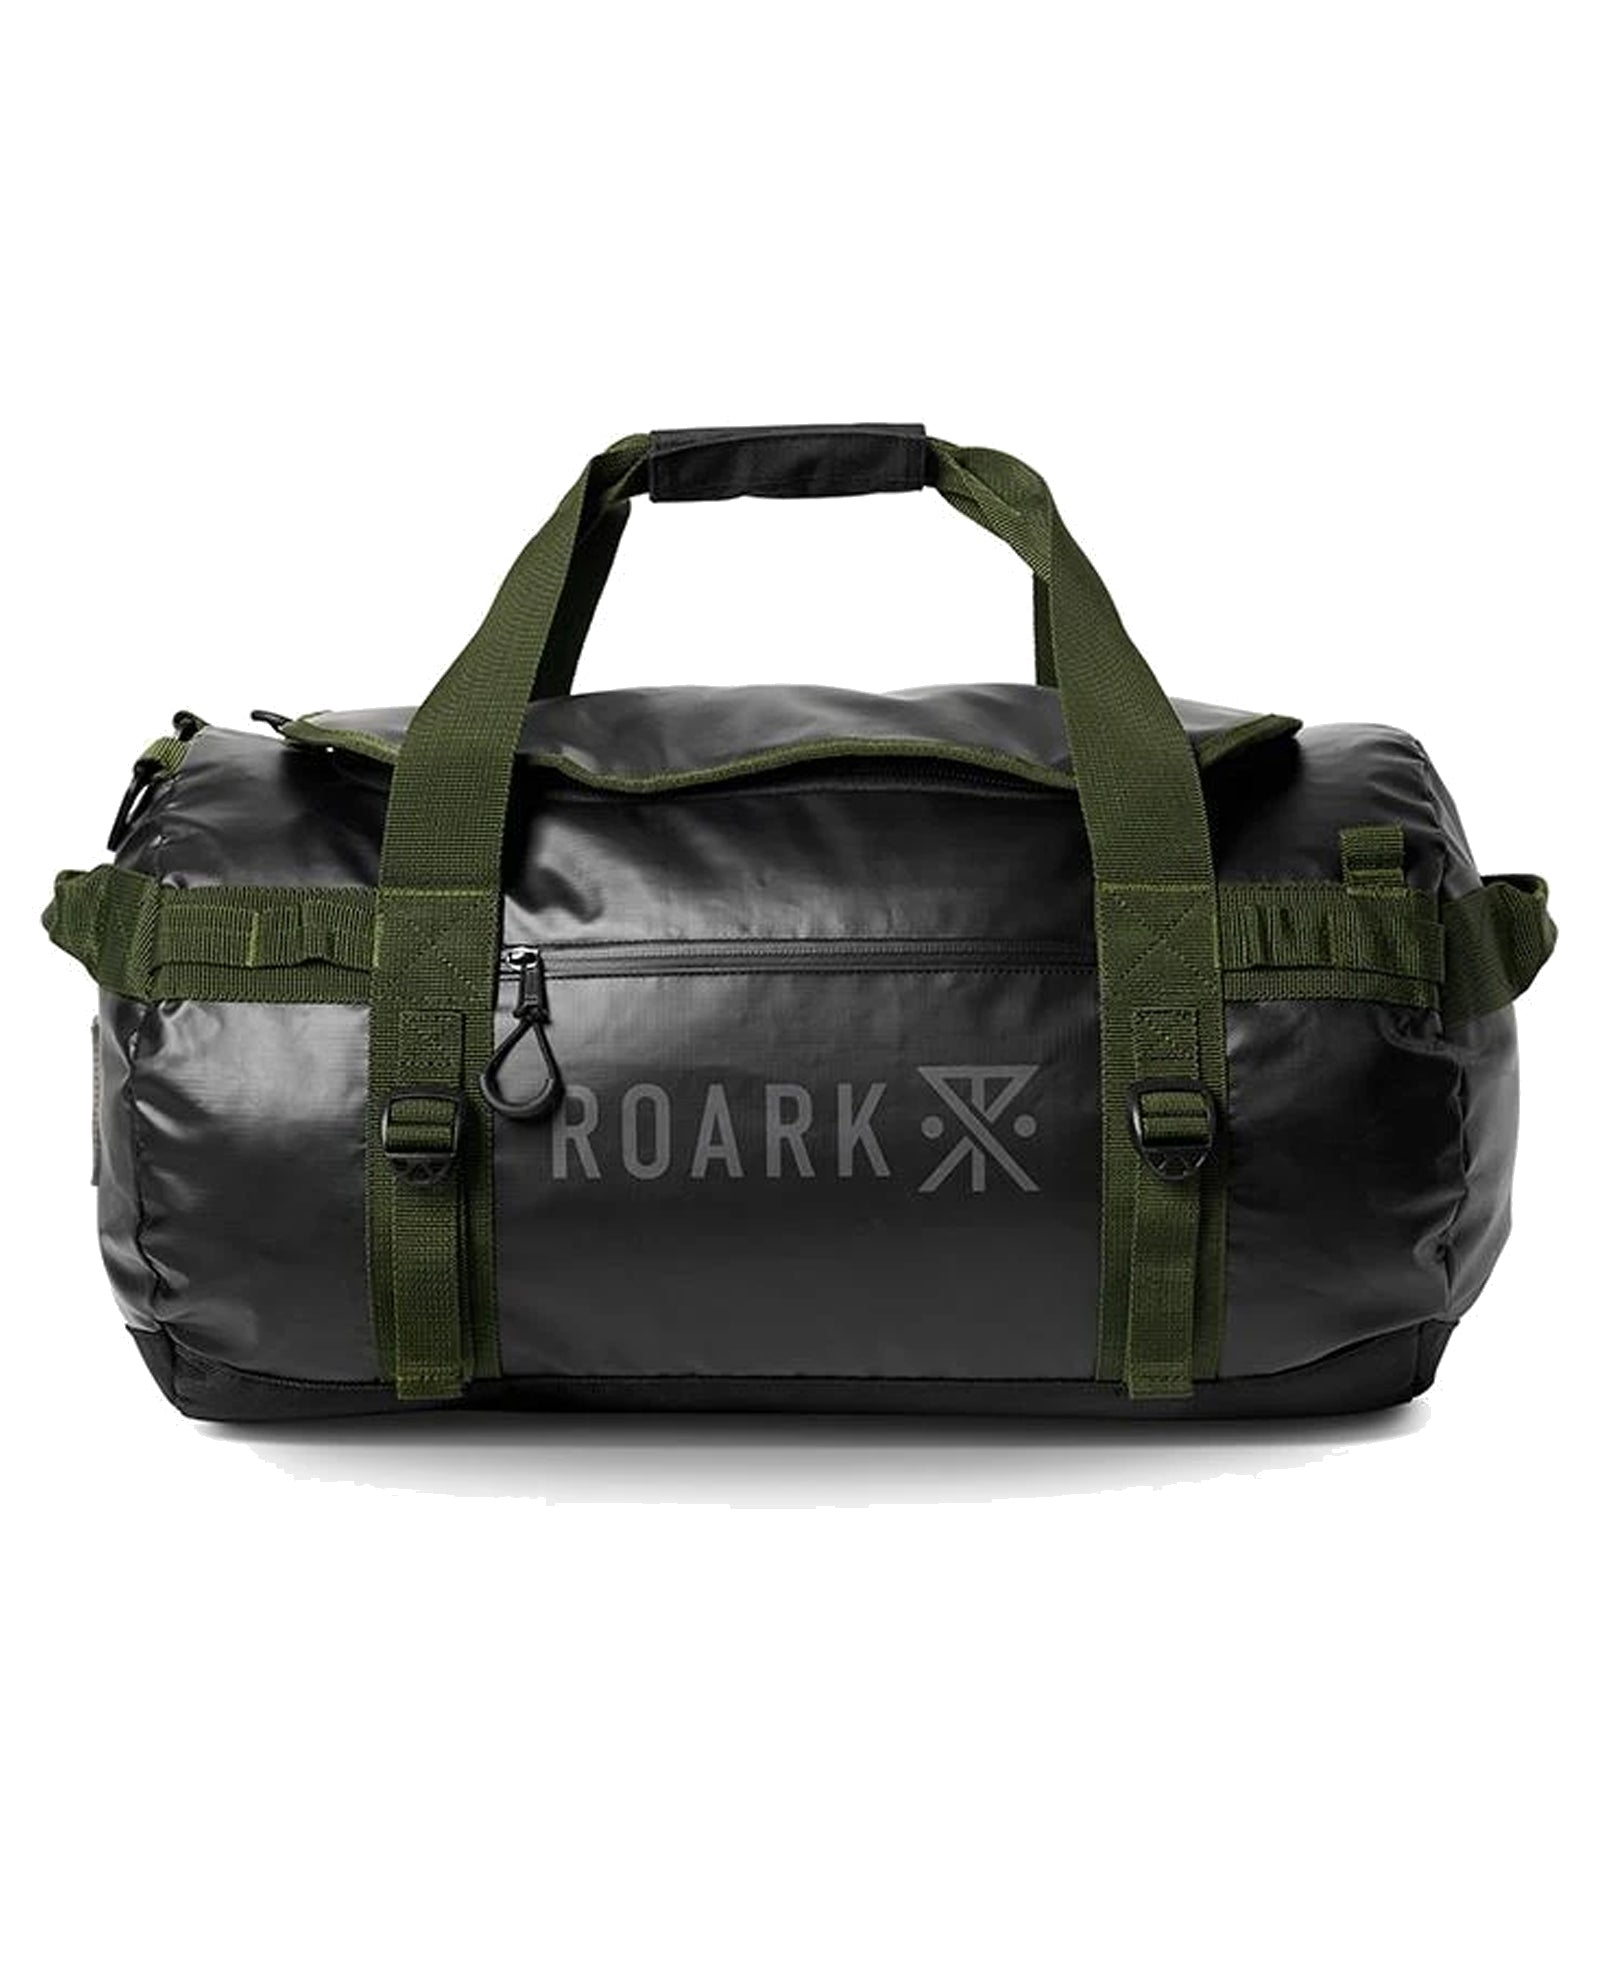 roark-duffel-bag-pony-keg-black-shopPony Keg Duffel Bag 60l